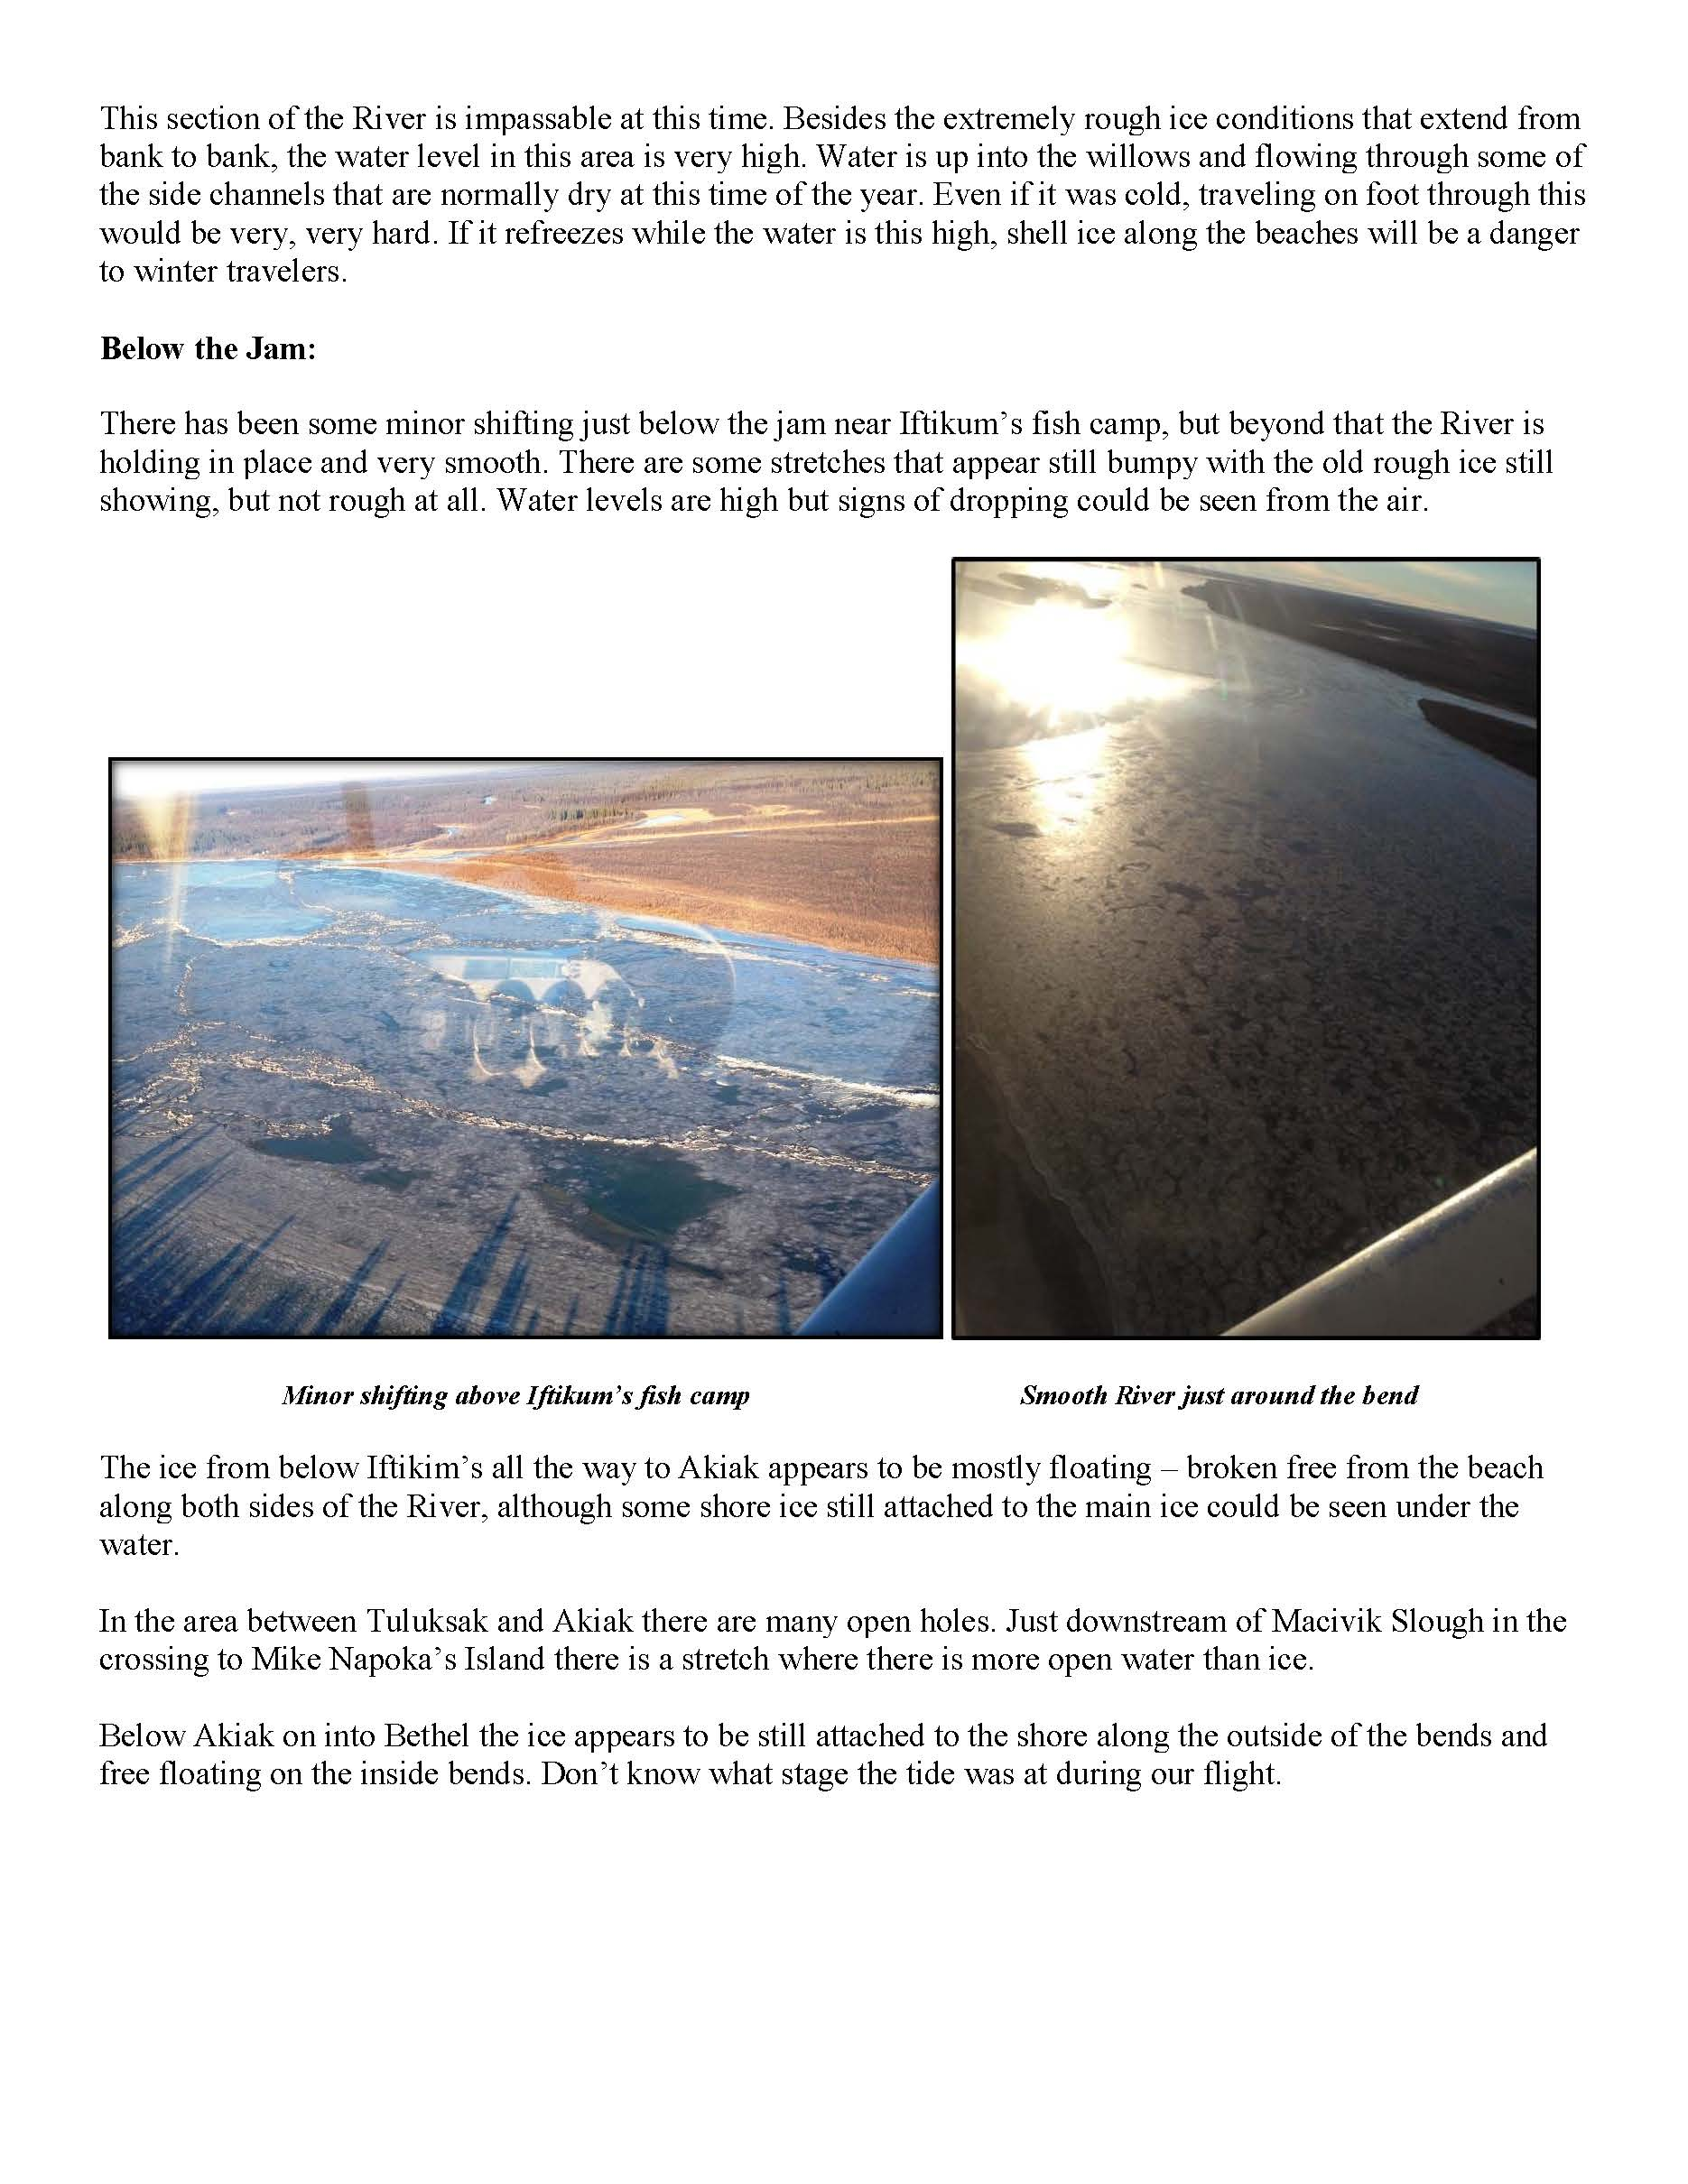 11-17-14 BSAR RIVER REPORT_Page_4